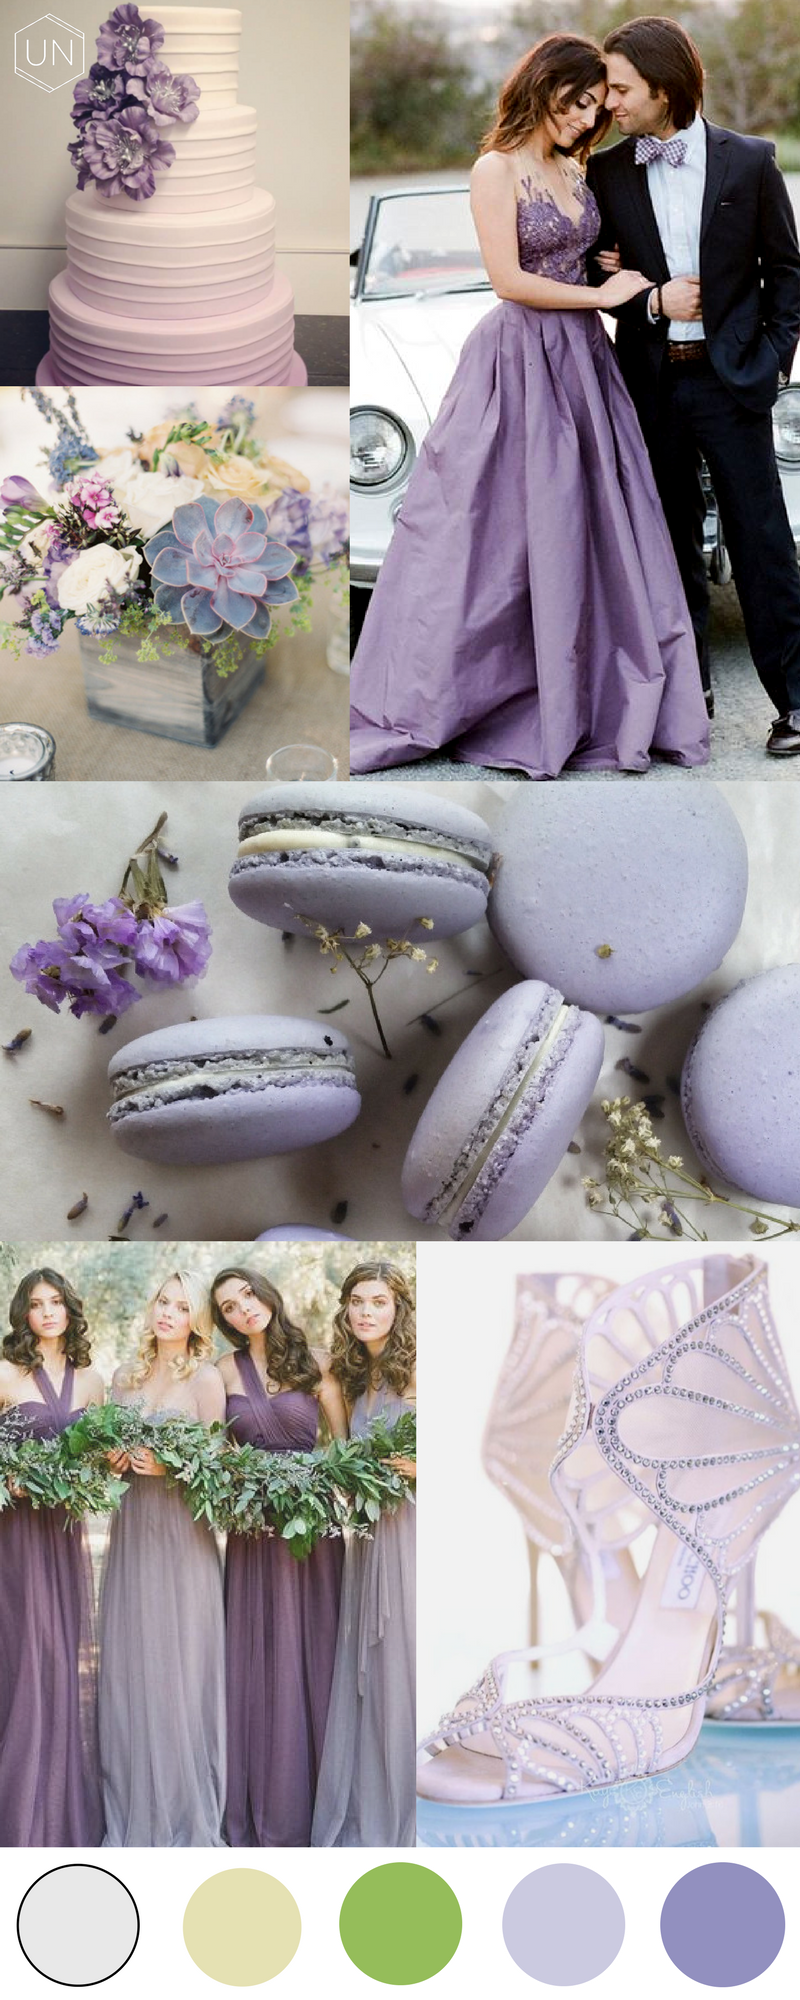 Unbridely Greenery Colour Palette - Feminine Lilac